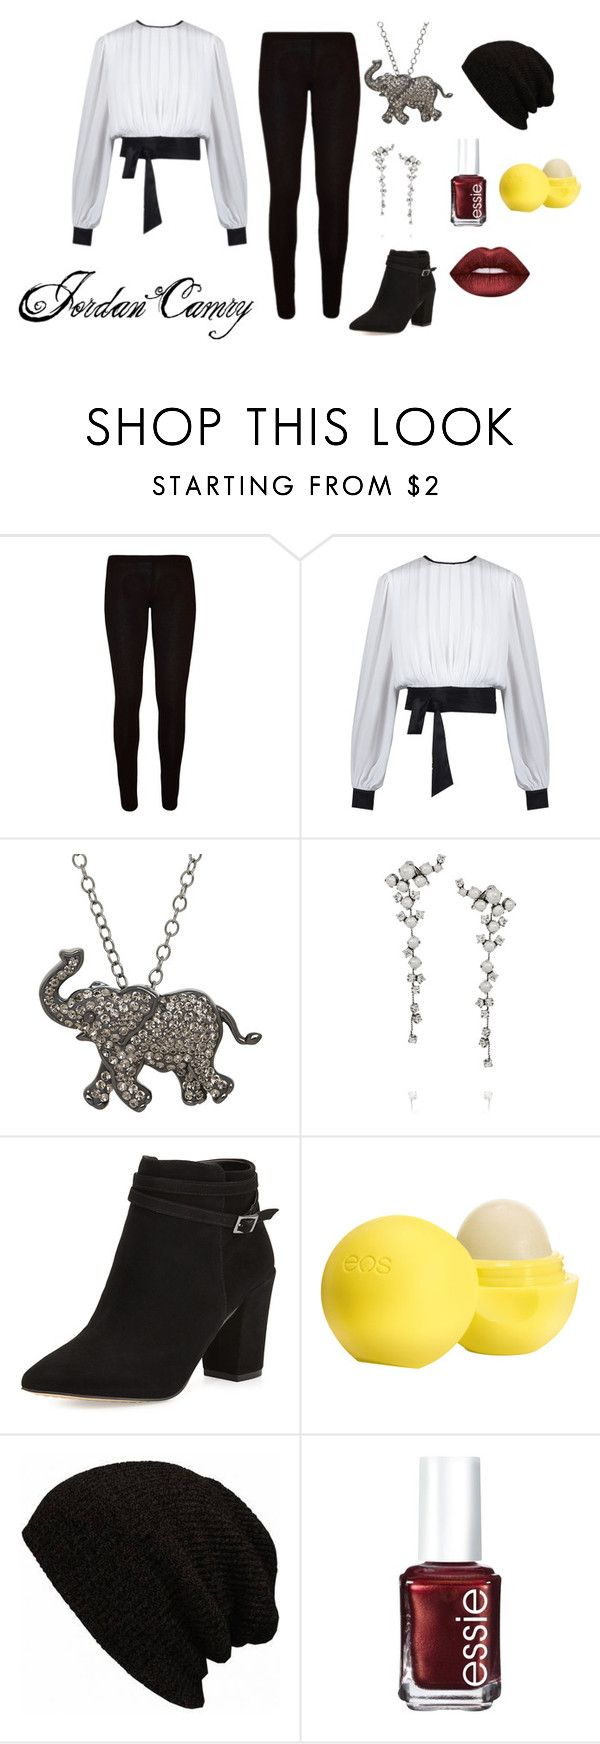 """""""Jordan Camry (Outfit 1)"""" by panda-girl01 on Polyvore featuring Animal Planet, Ryan Storer, Steven by Steve Madden, Eos, Essie and Lime Crime"""